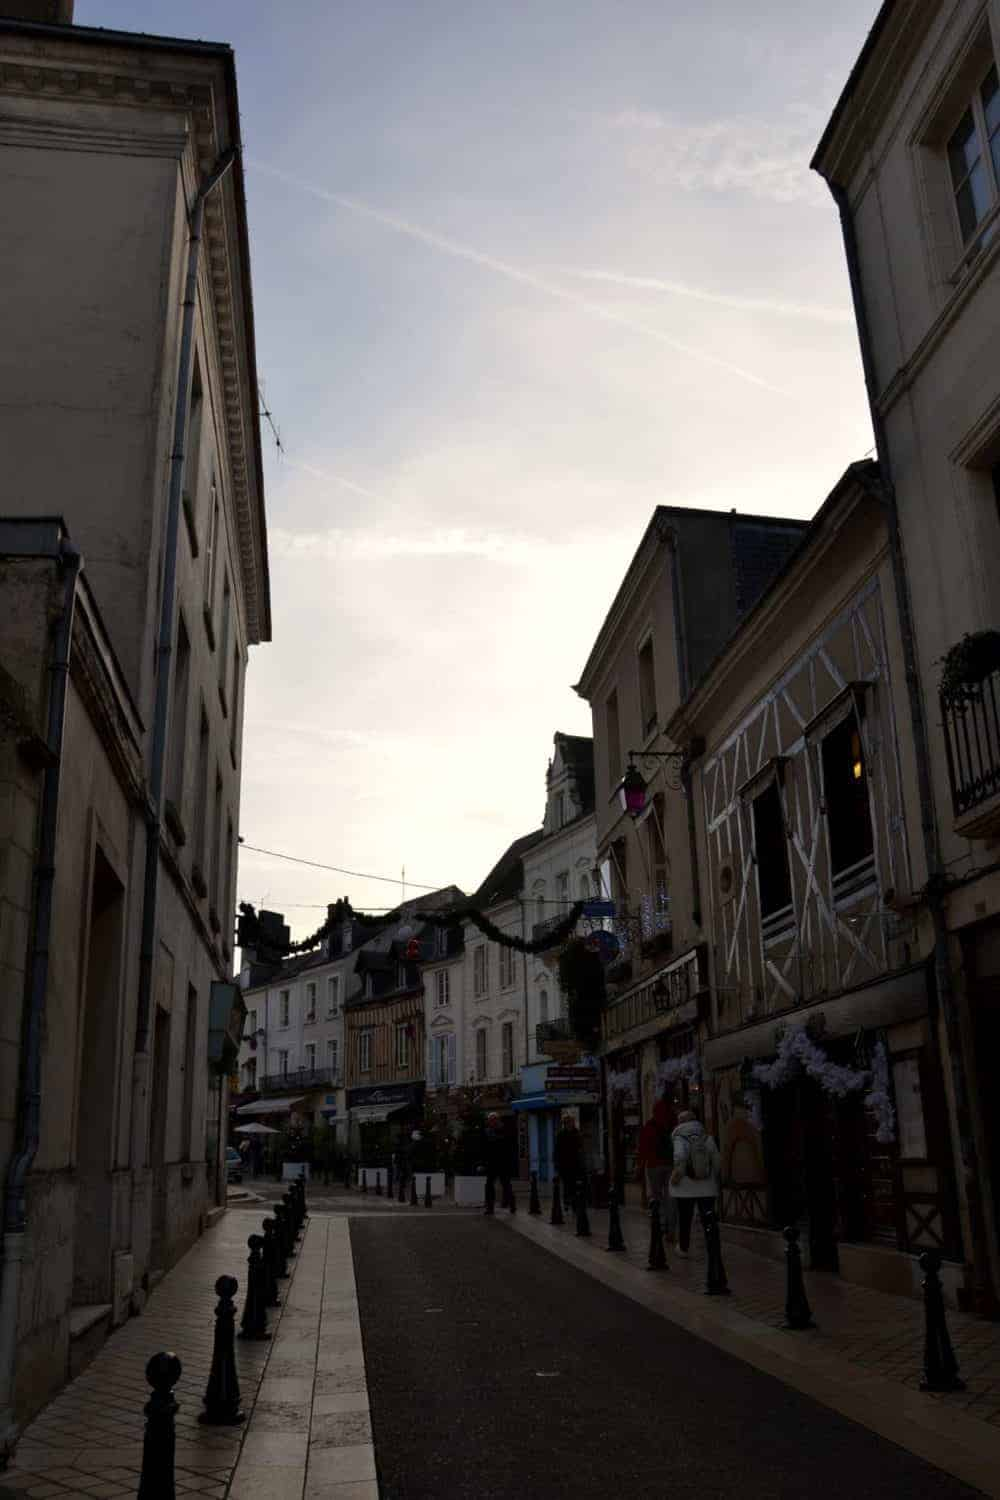 Chateaux Amboise street